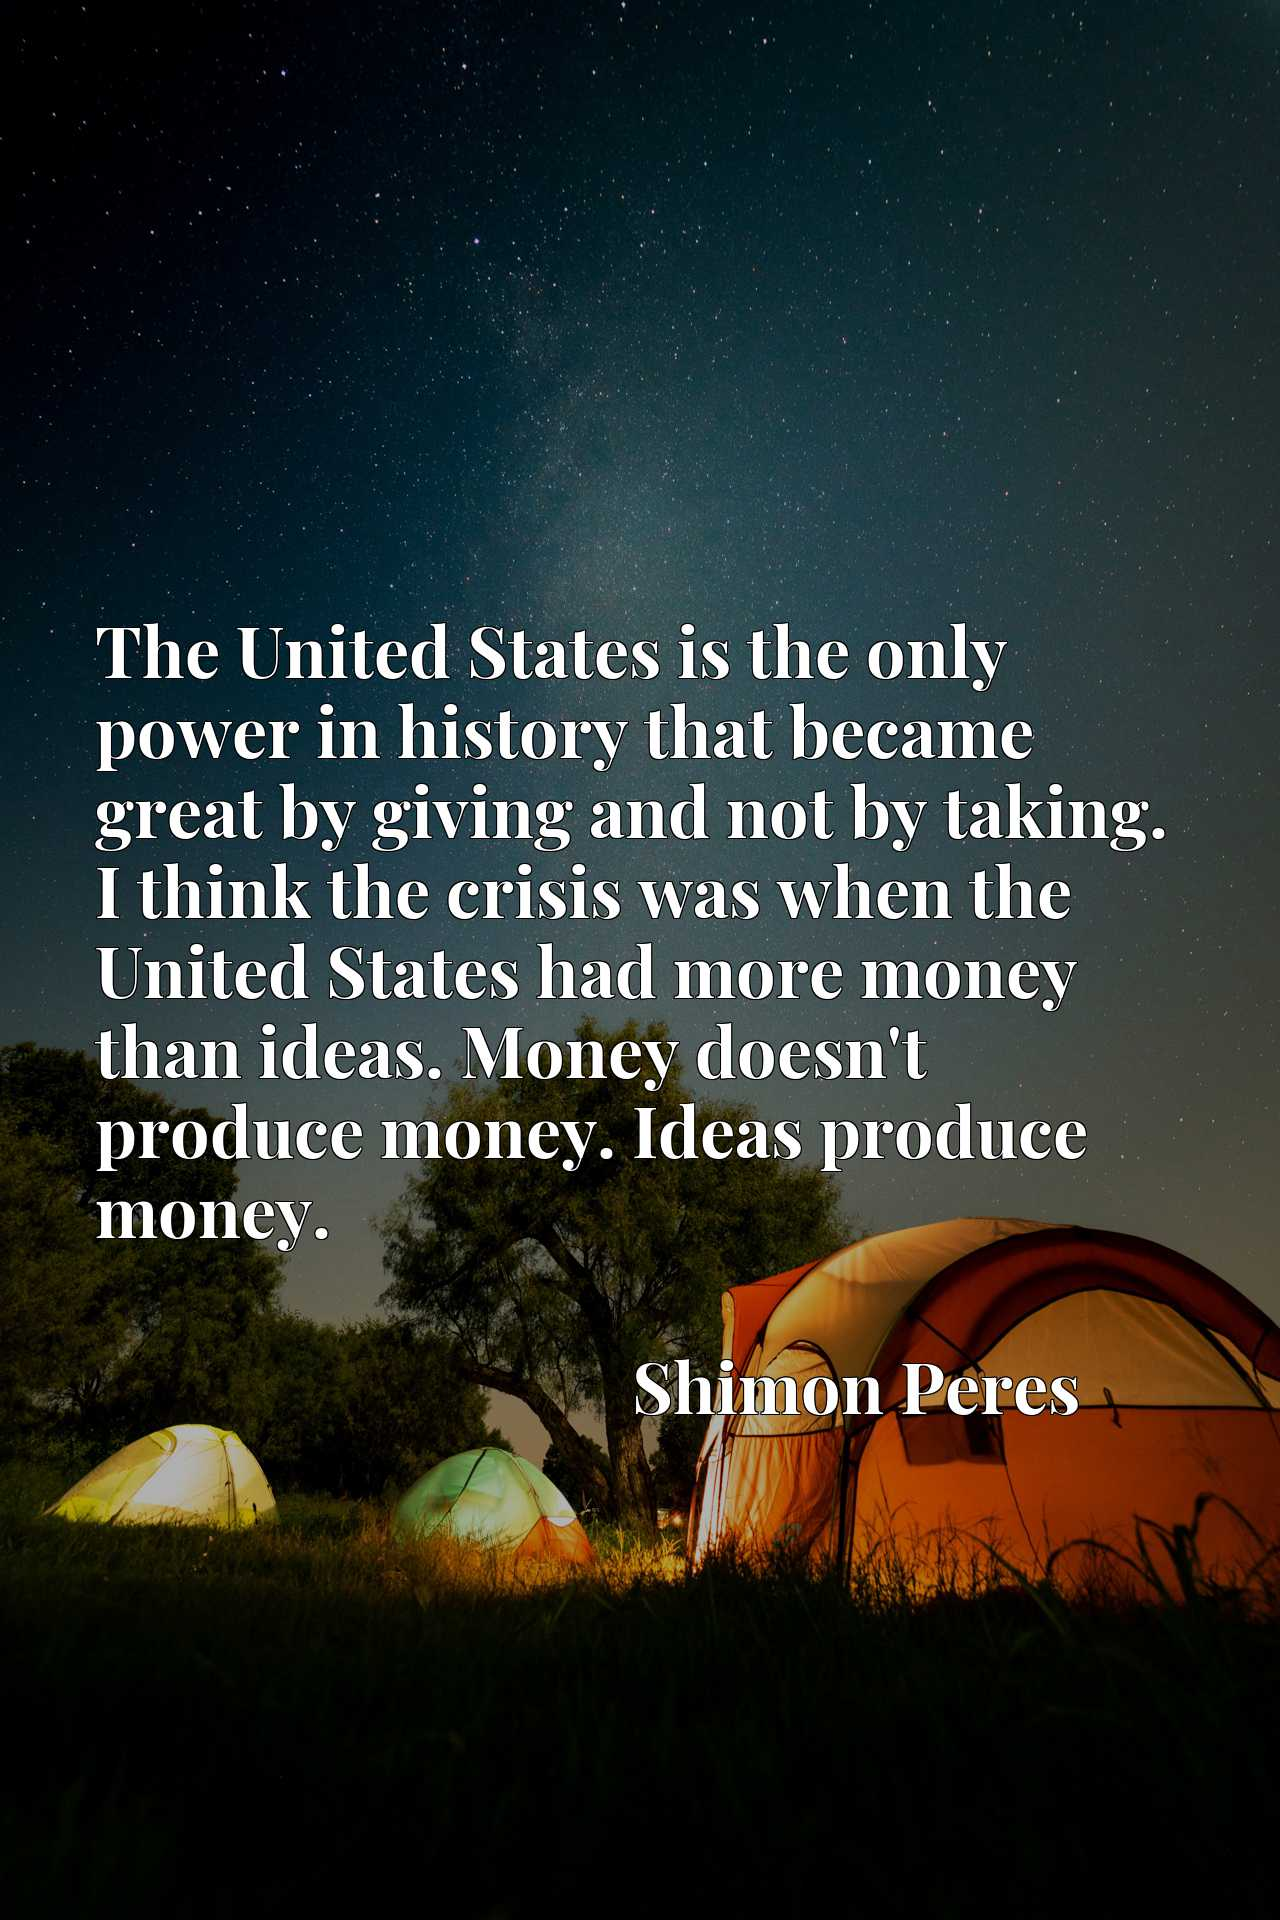 The United States is the only power in history that became great by giving and not by taking. I think the crisis was when the United States had more money than ideas. Money doesn't produce money. Ideas produce money.